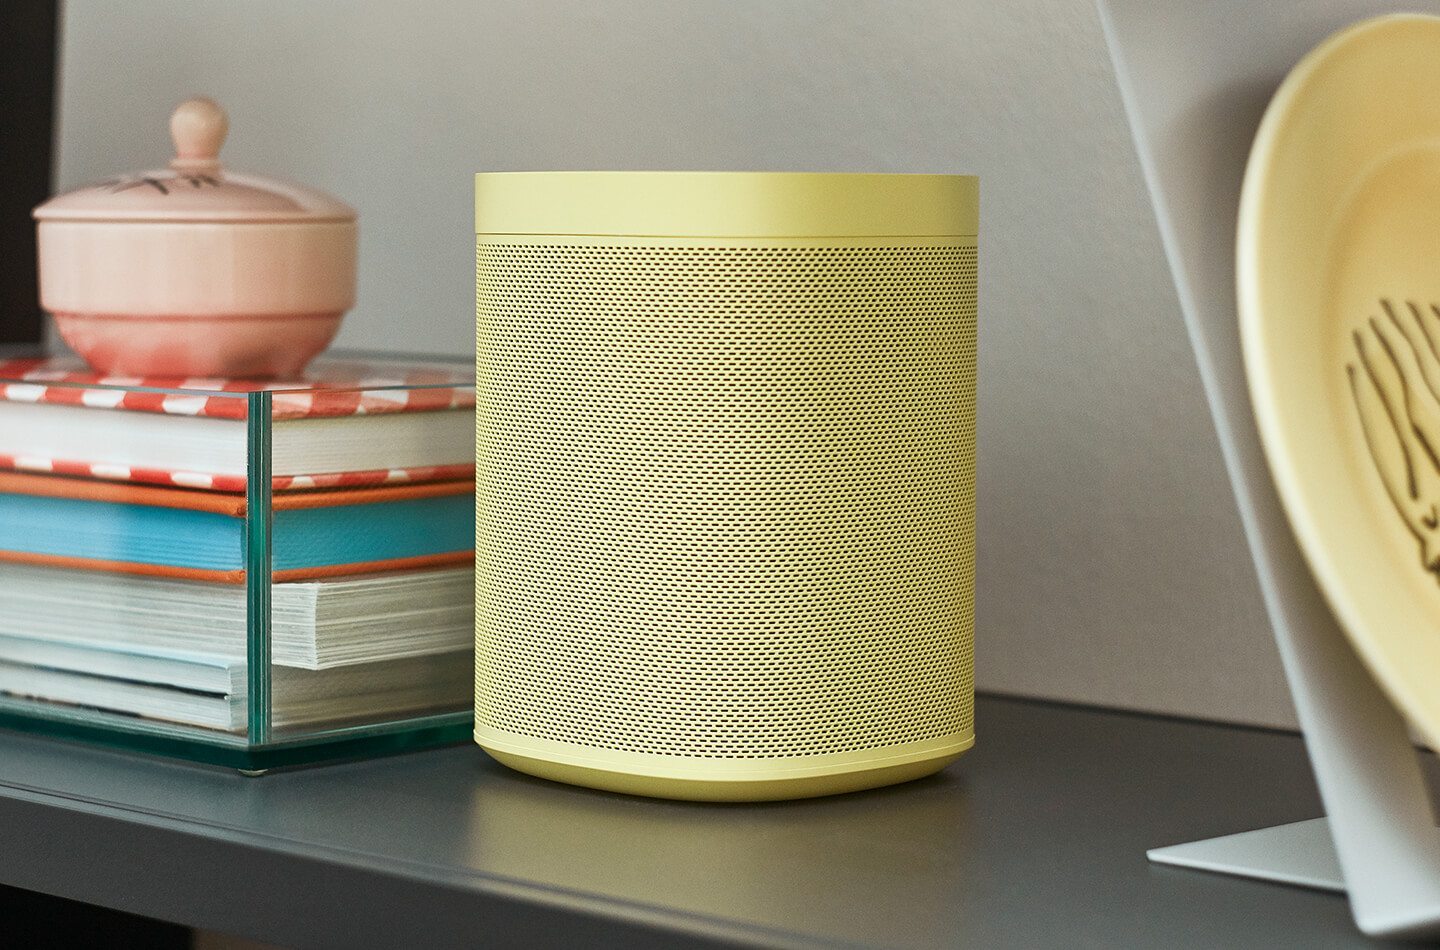 The Sonos One is getting some fancy new colour options